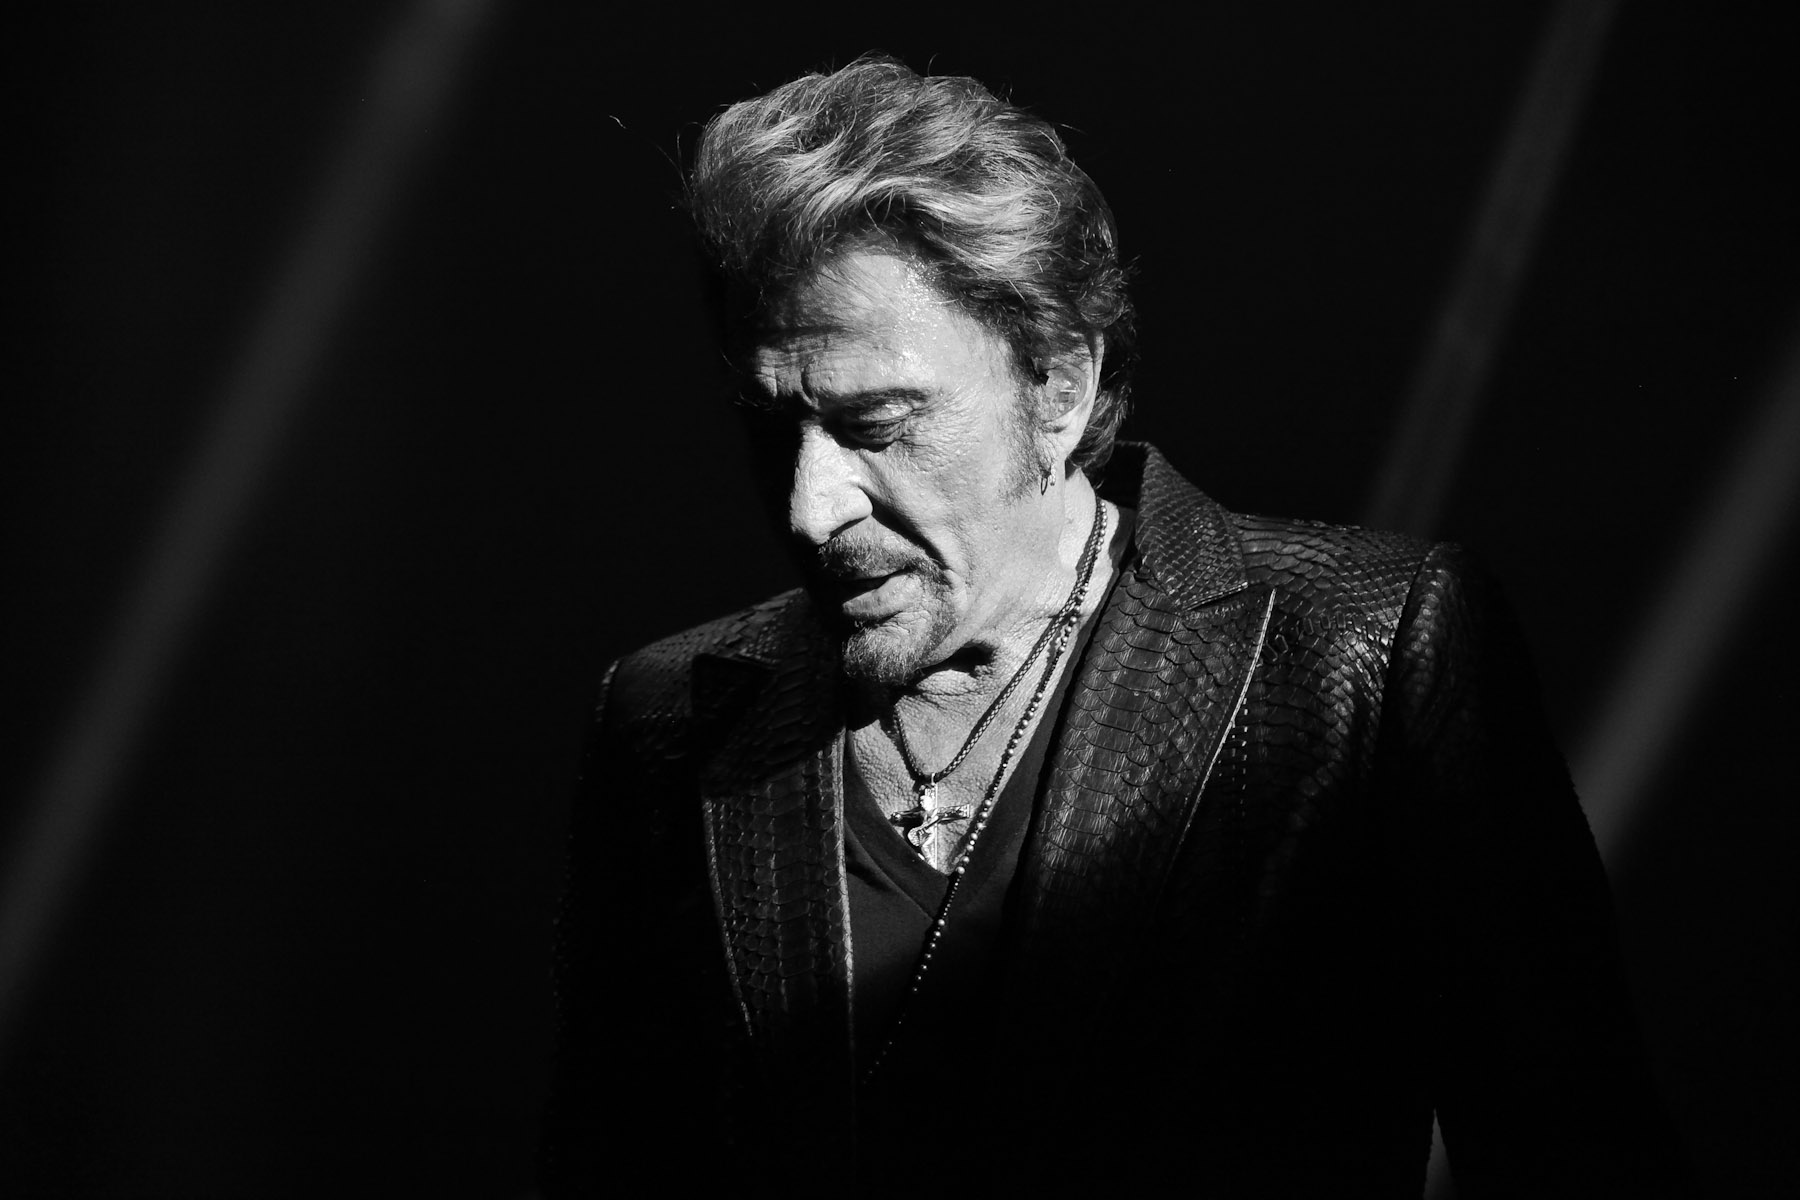 Johnny Hallyday at the Royal Albert hall by Christie Goodwin